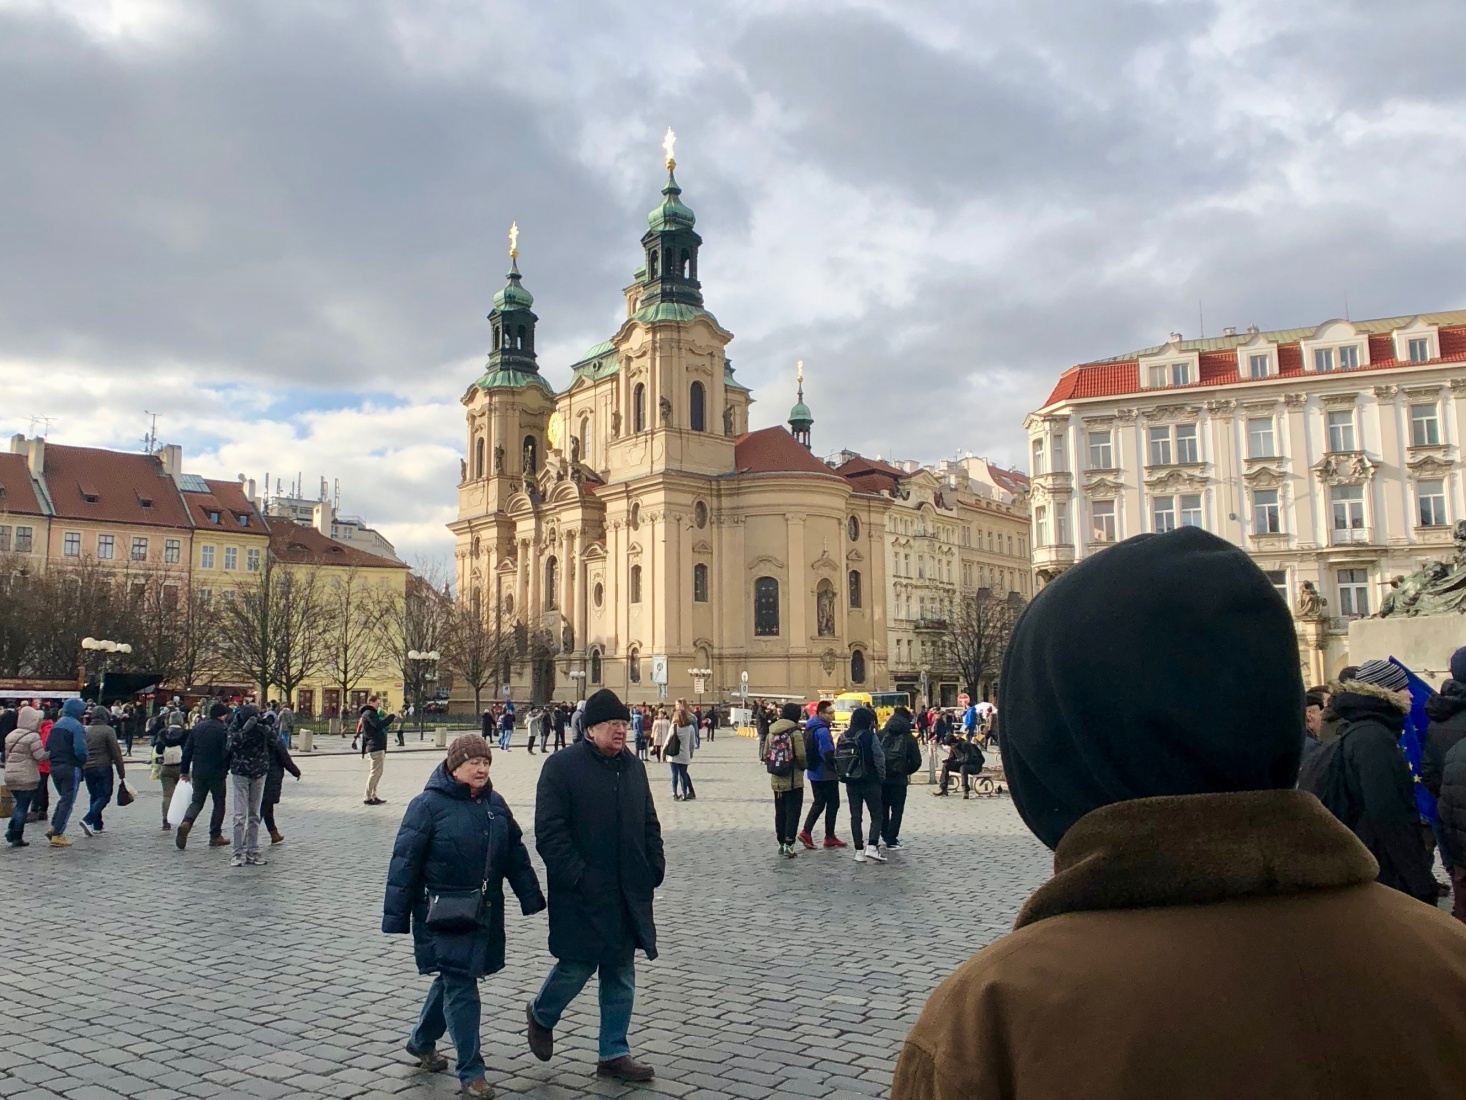 Baroque St. Nicholas Church in Old Town Square, Staromestska, Prague, surrounded by neoclassical and other eras of architecture.